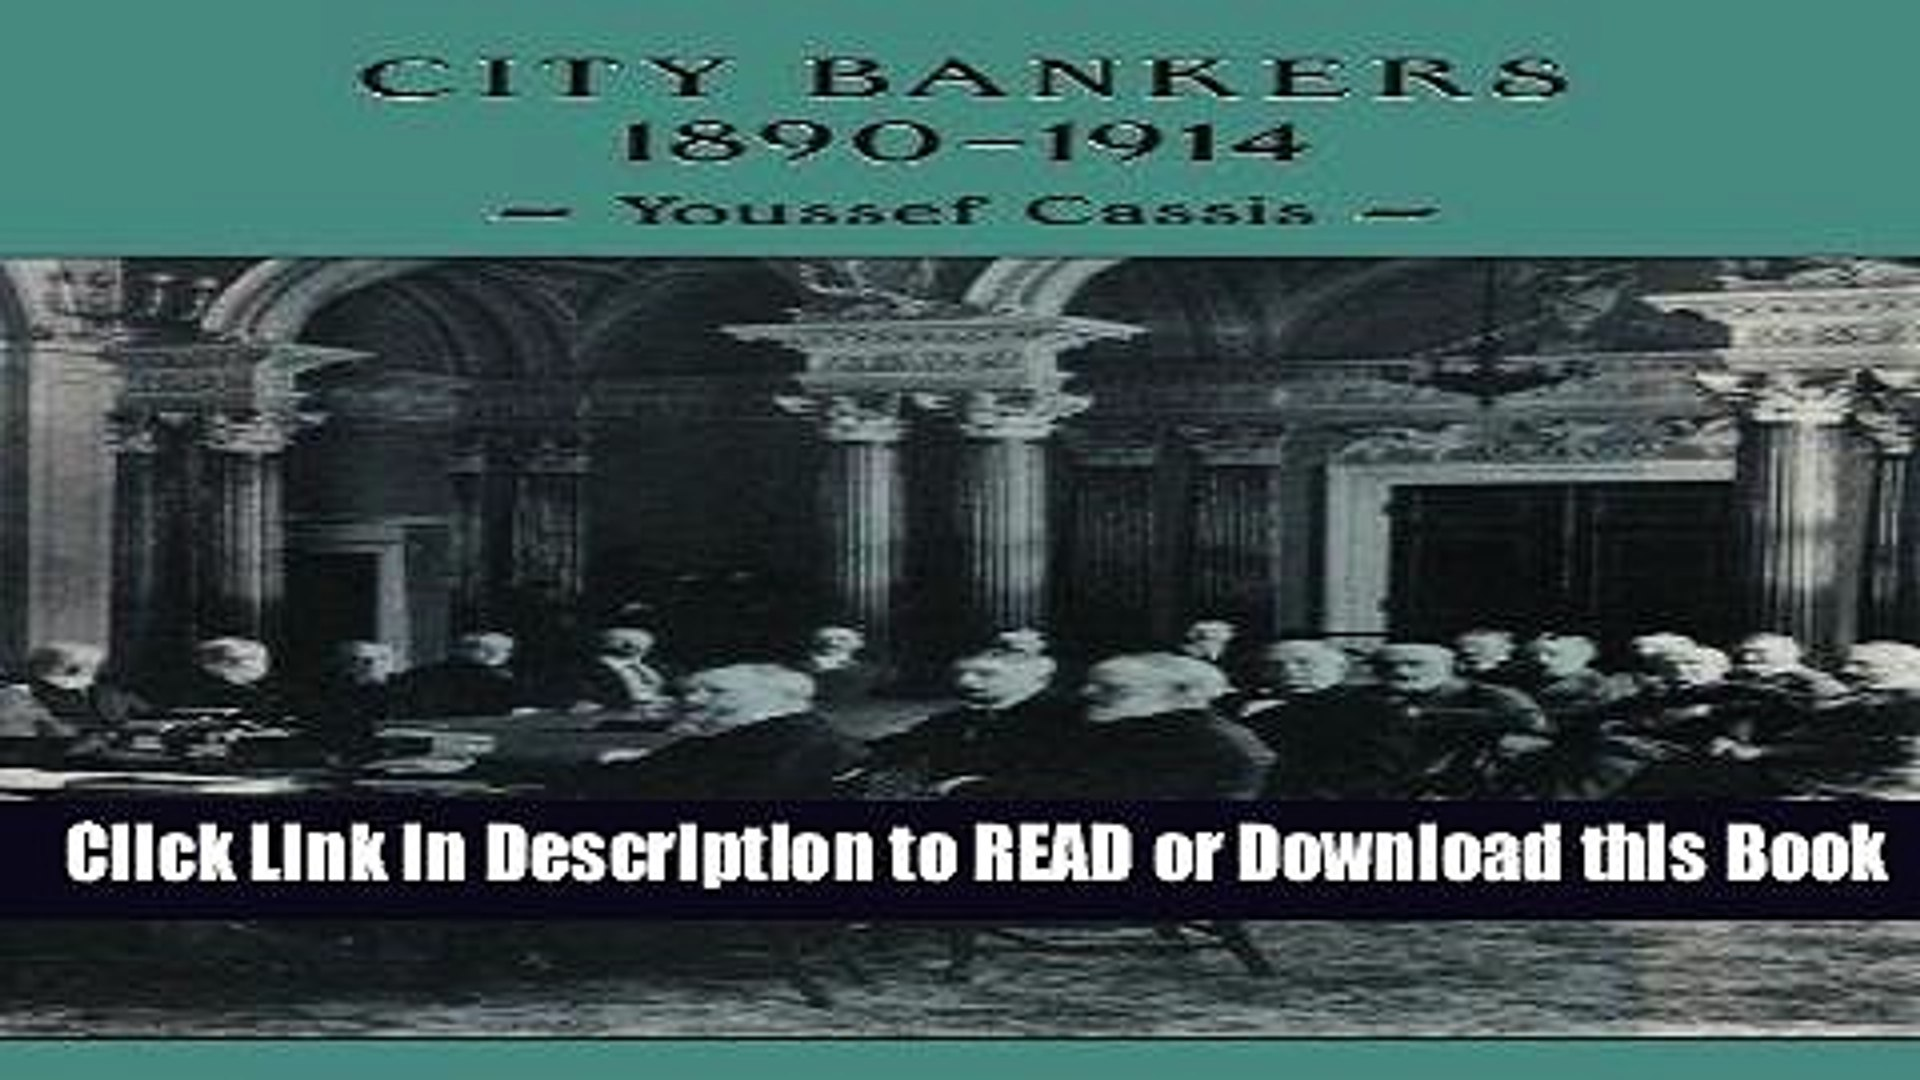 Download Free City Bankers, 1890-1914 Audiobook Free